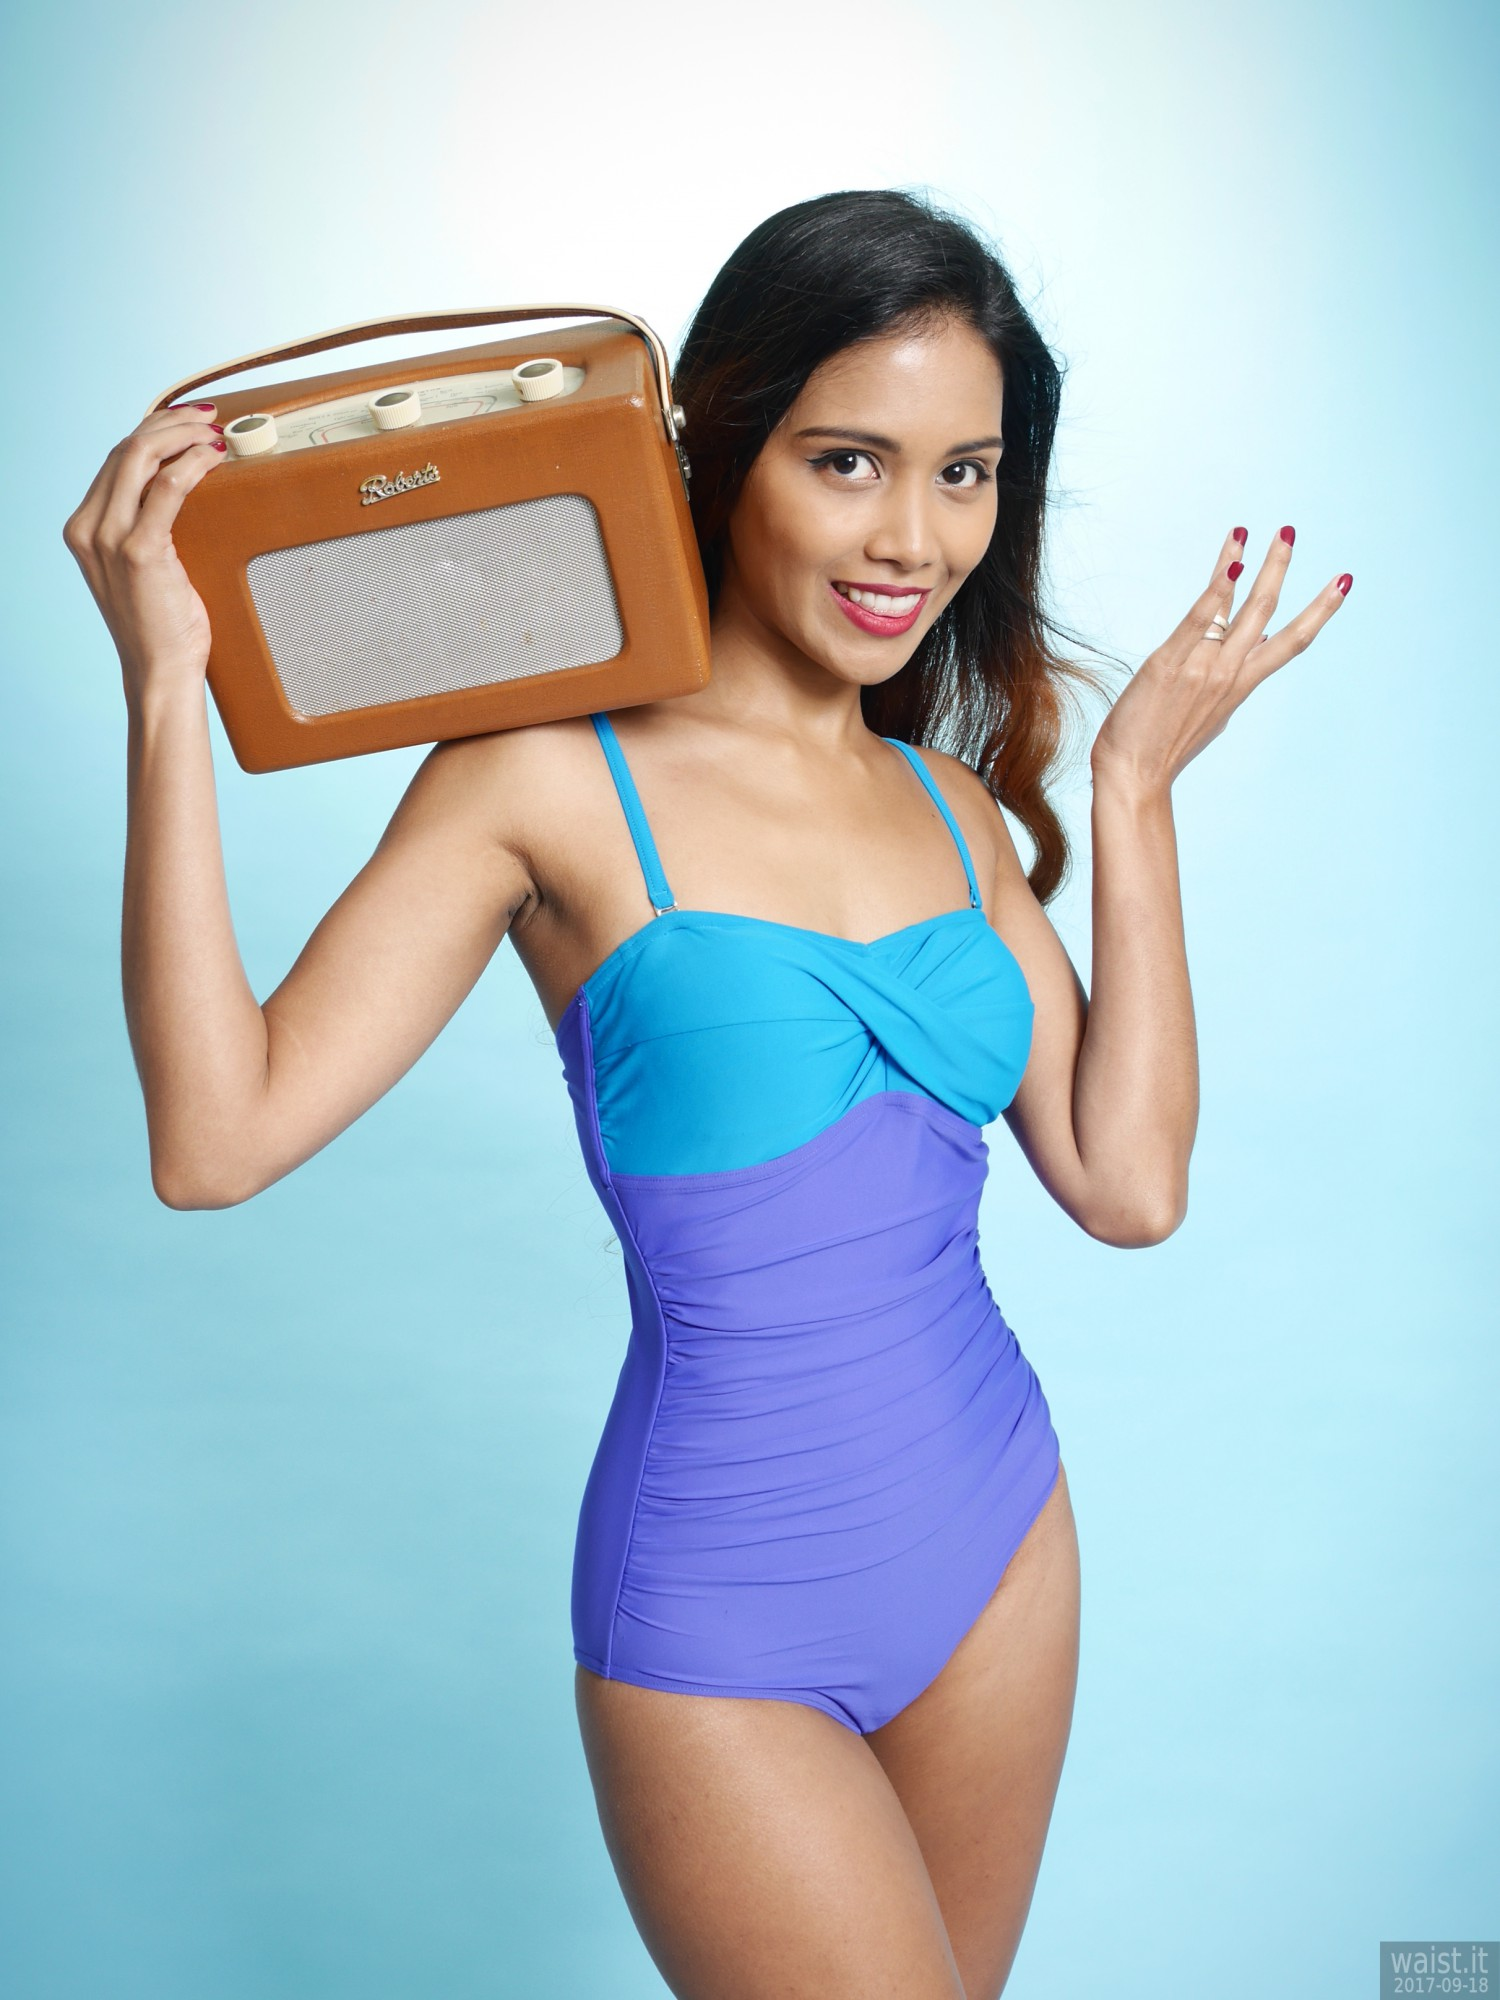 2017-09-18 Faranas in blue and purple vintage style one-piece swimsuit by M&S